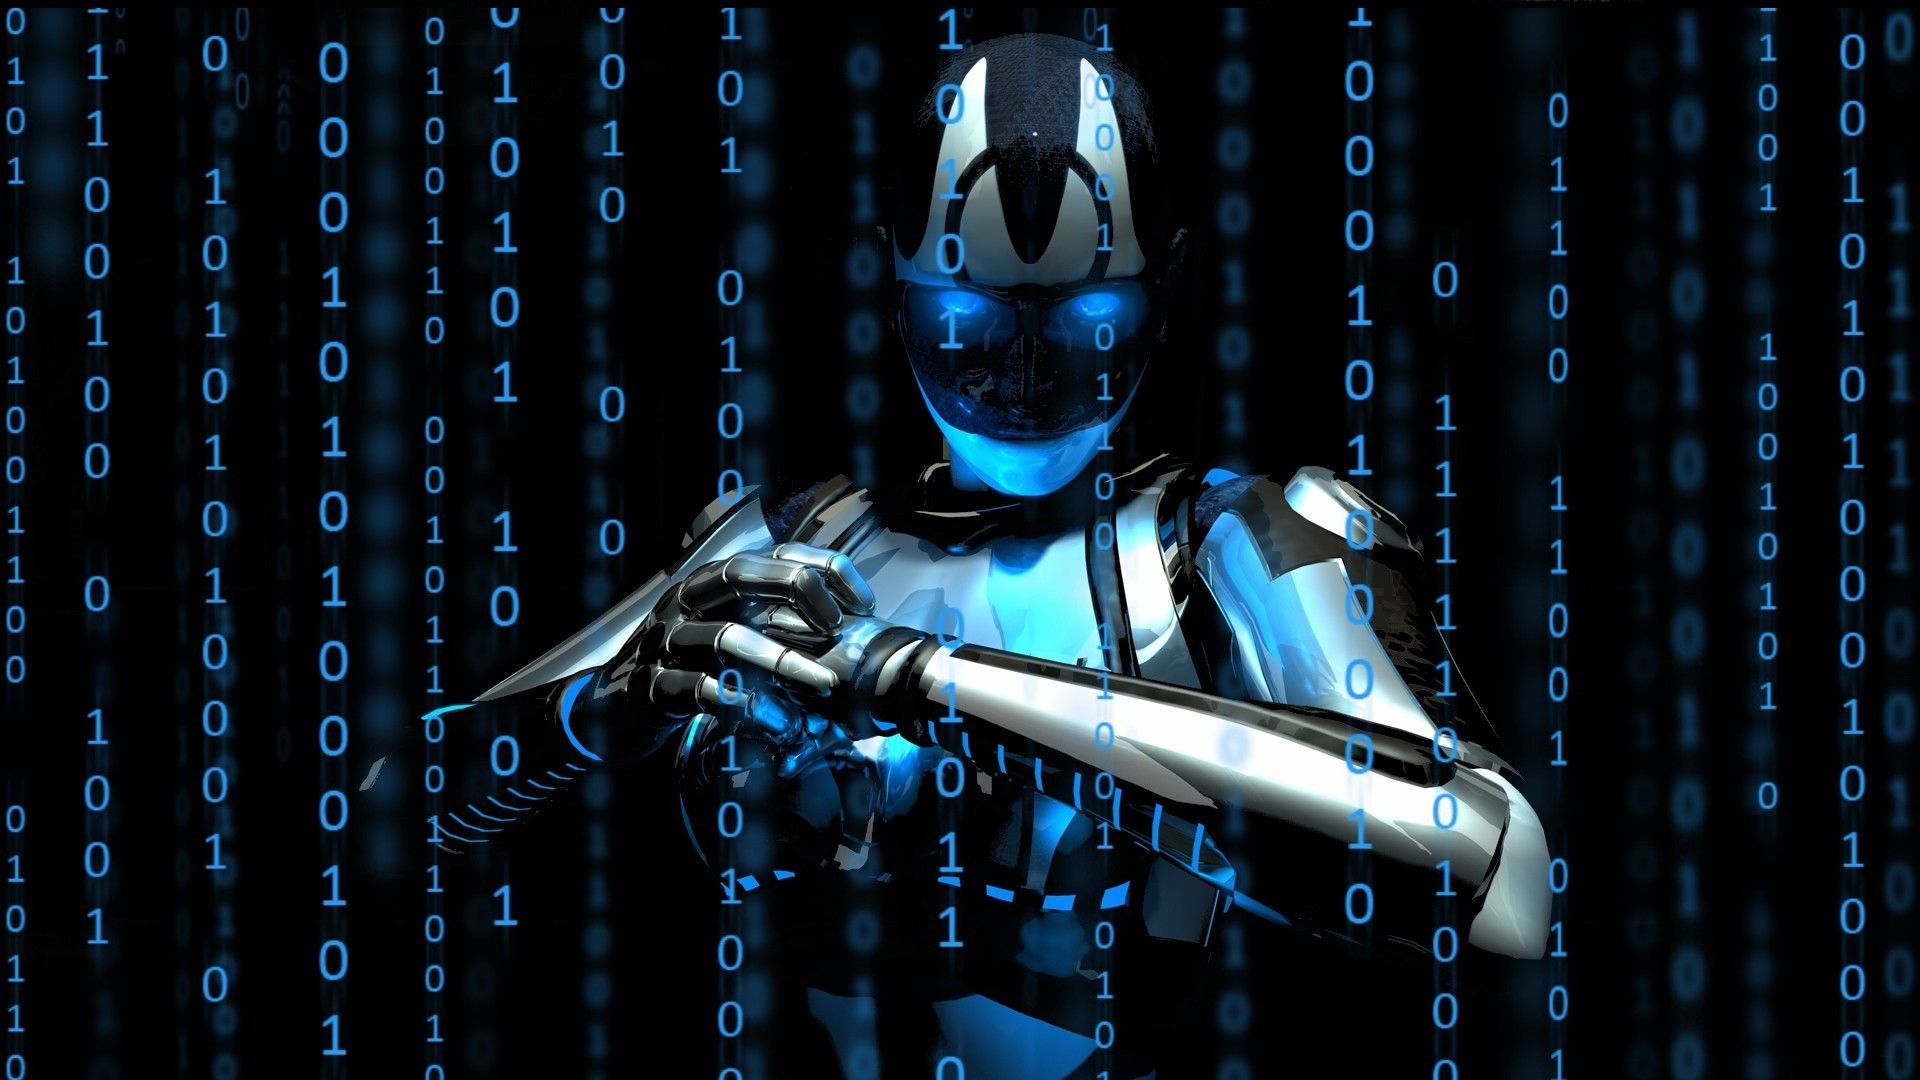 Computer Science Backgrounds Free Download Robot Wallpaper Computer Wallpaper Hd Science Background